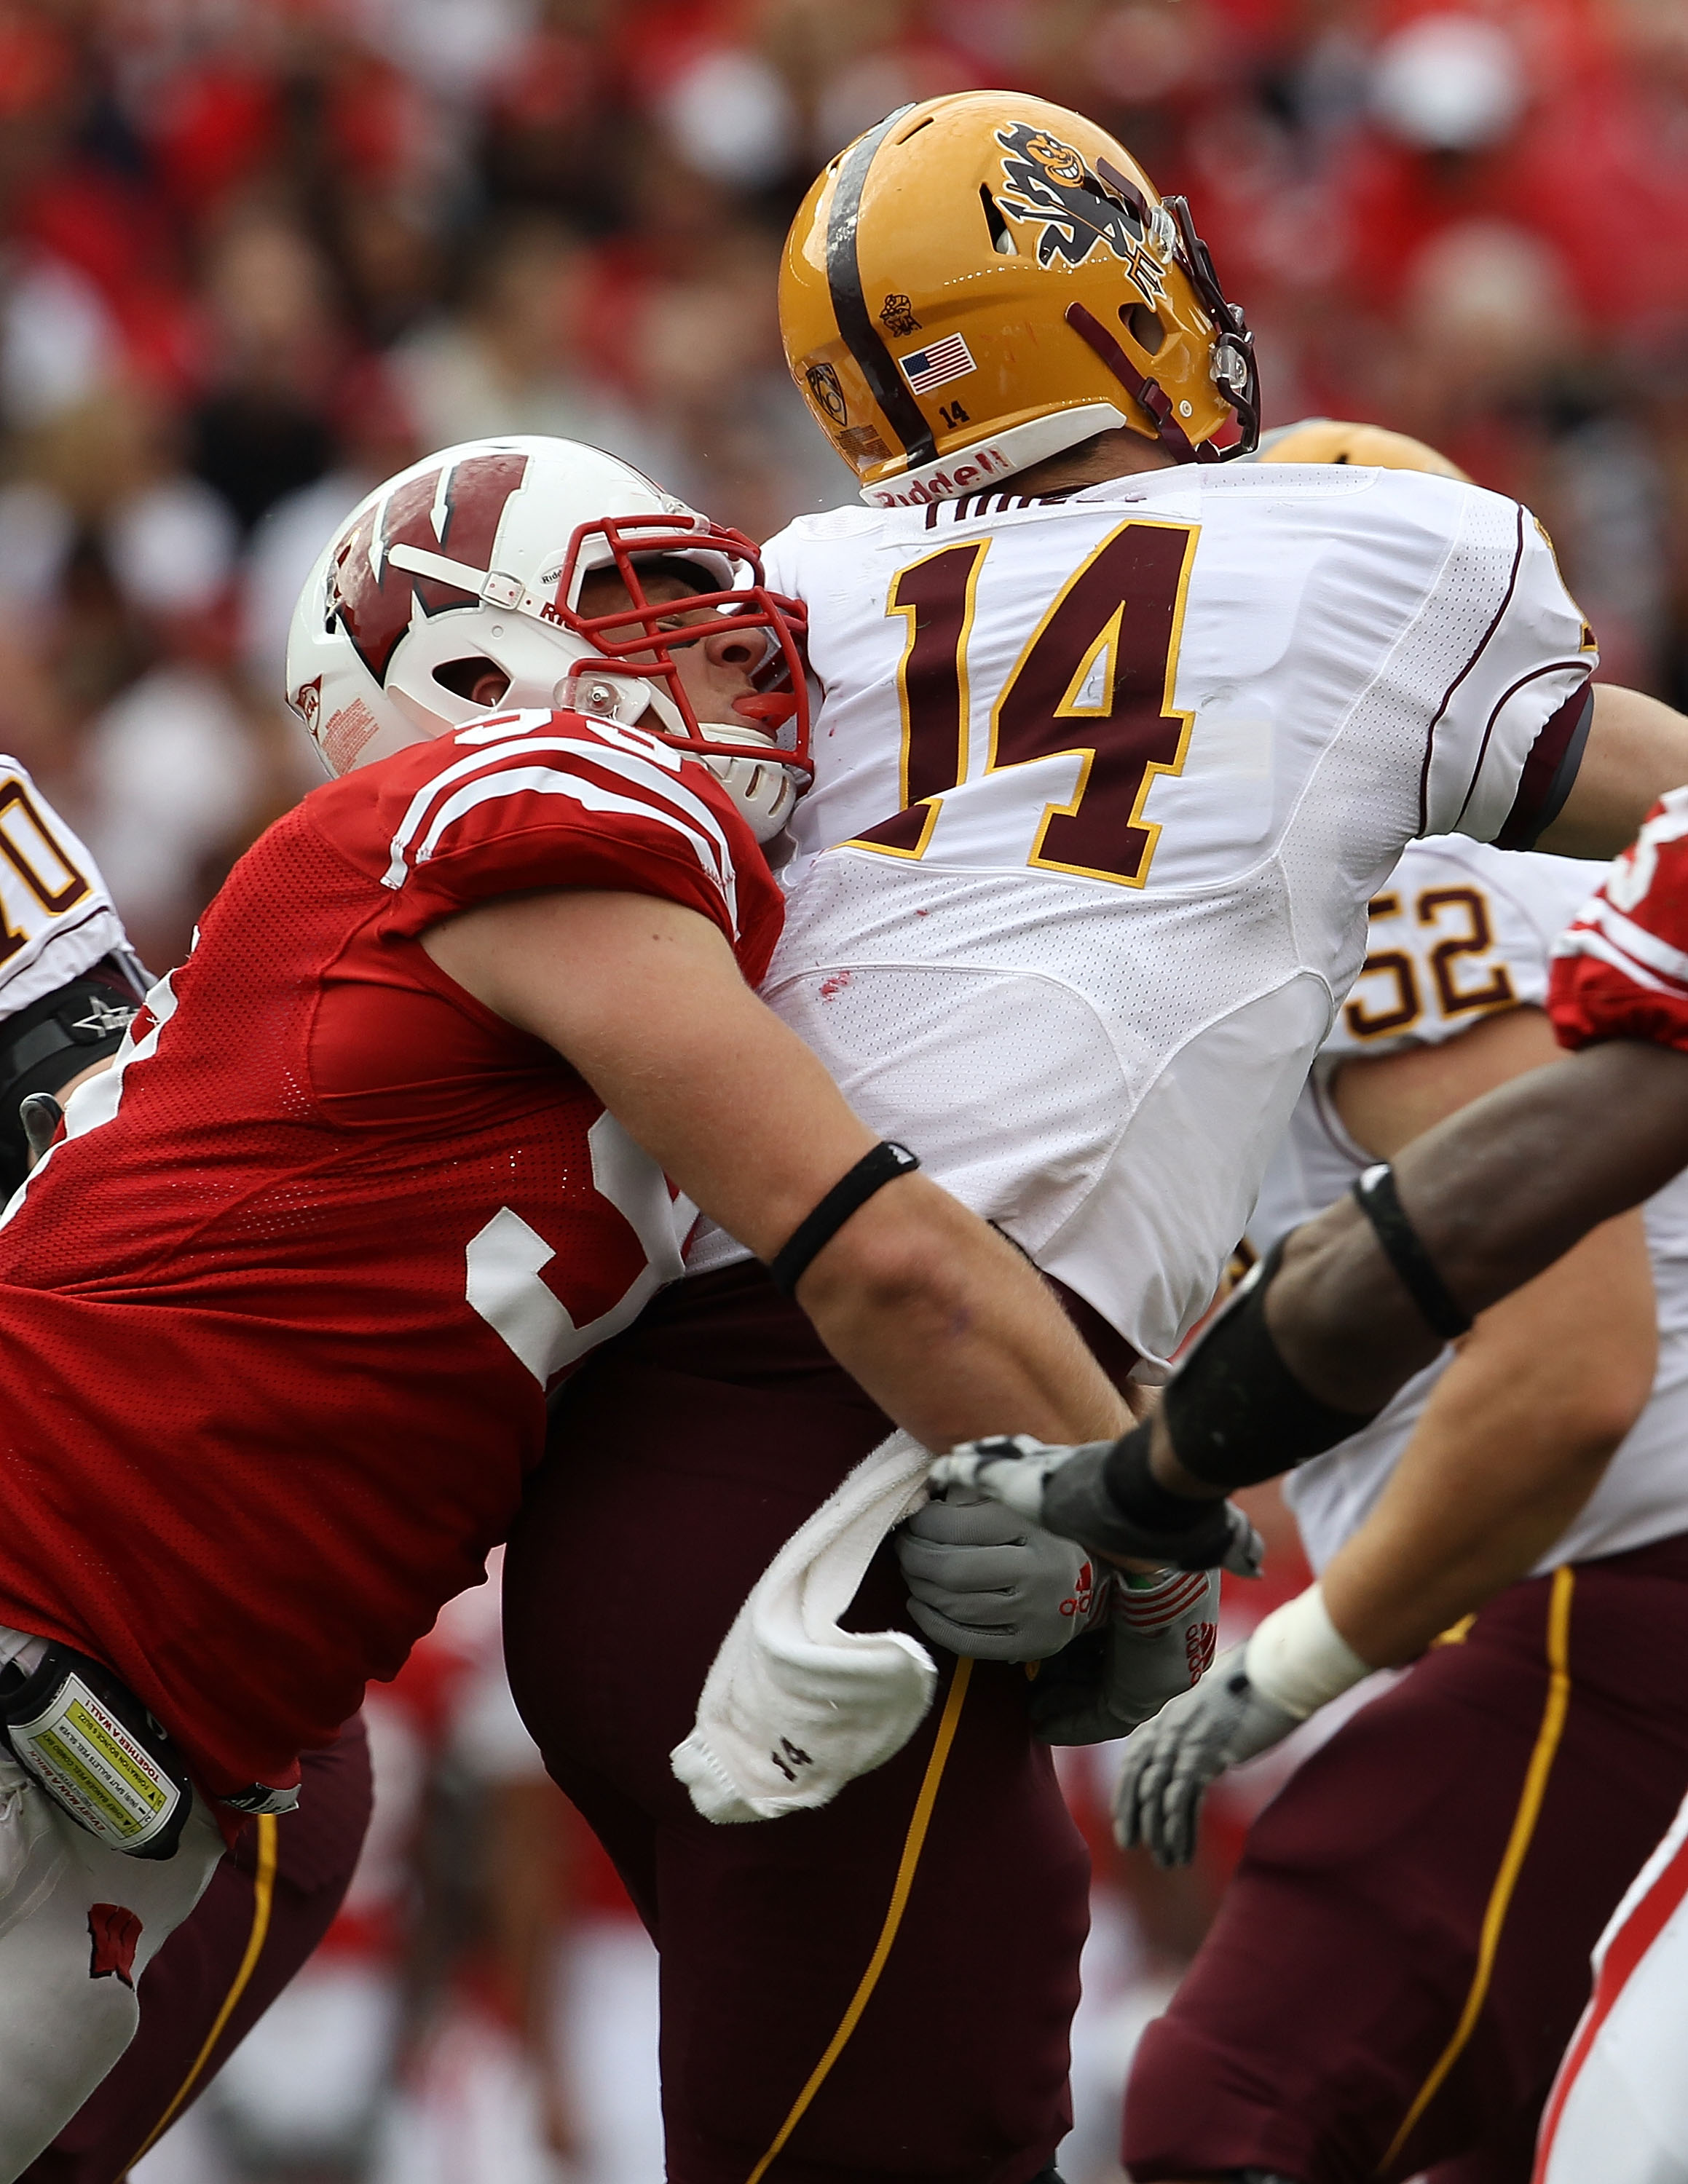 MADISON, WI - SEPTEMBER 18: J.J. Watt #99 of the Wisconsin Badgers hits Steven Threet #14 of the Arizona State Sun Devils at Camp Randall Stadium on September 18, 2010 in Madison, Wisconsin. Wisconsin defeated Arizona State 20-19. (Photo by Jonathan Danie